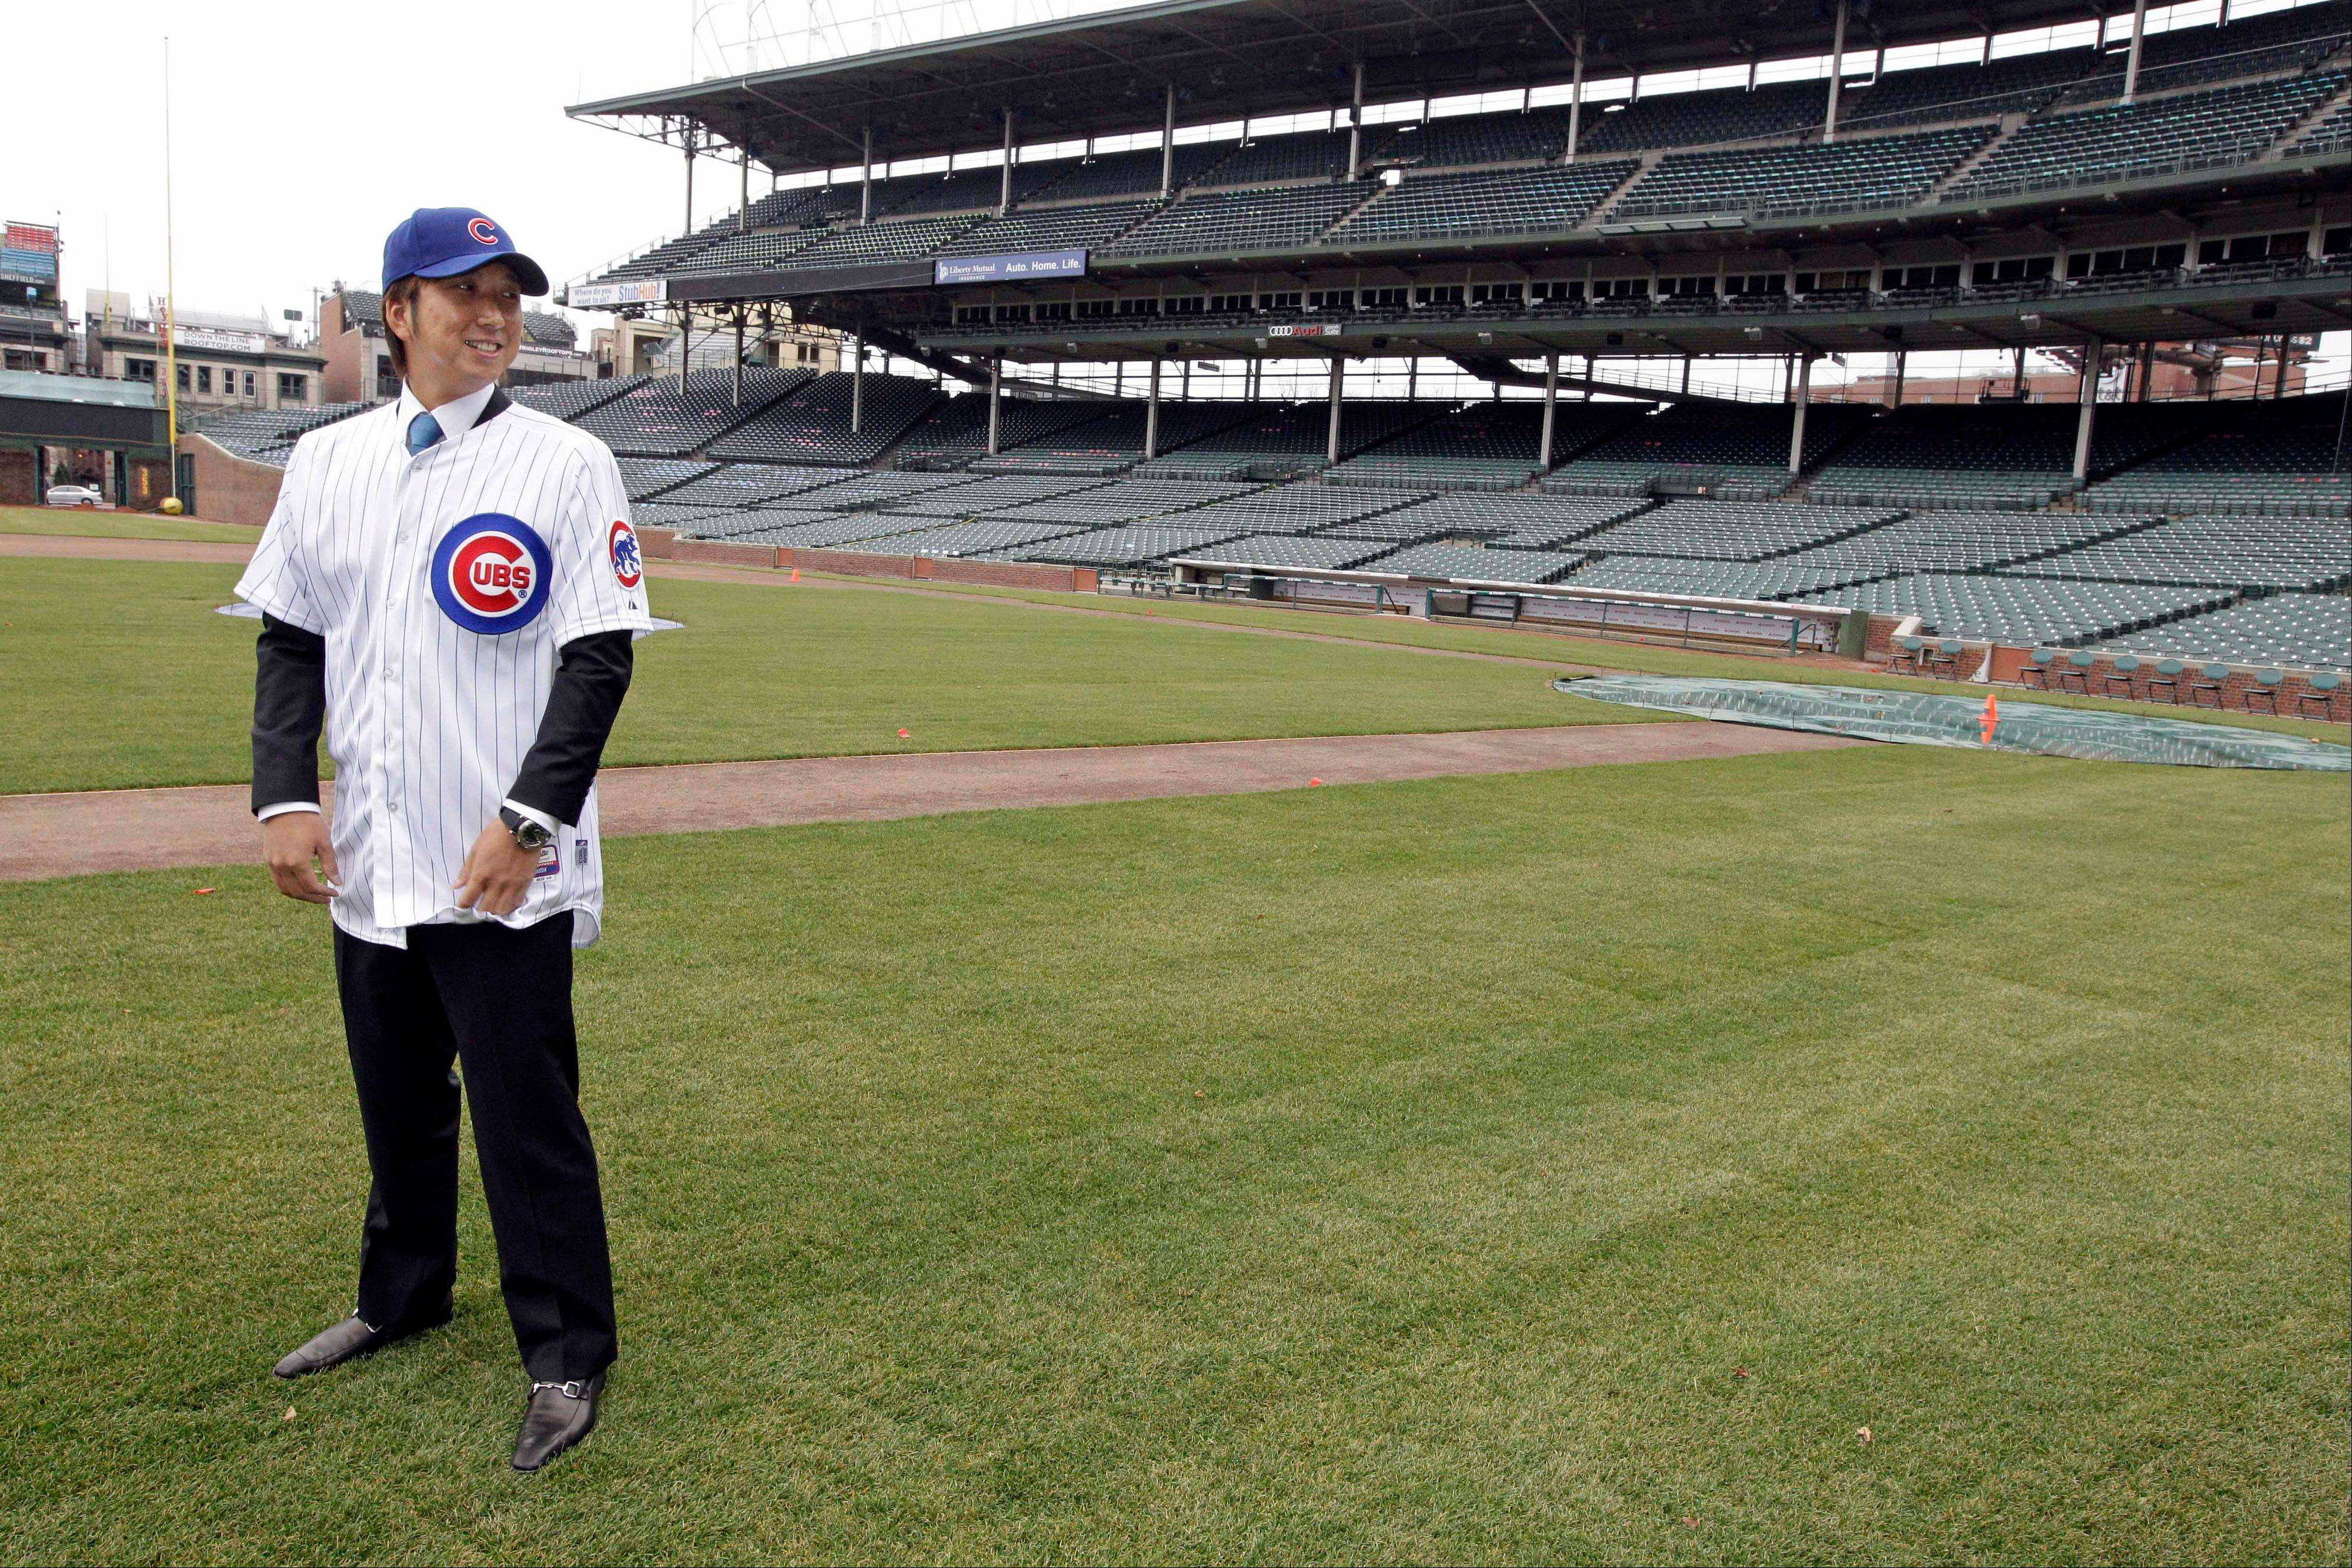 New pitcher Kyuji Fujikawa of Japan says it doesn't matter whether he's a closer or a setup man in the bullpen with the Cubs. He signed a two-year deal with the club and held a news conference in Chicago Friday.